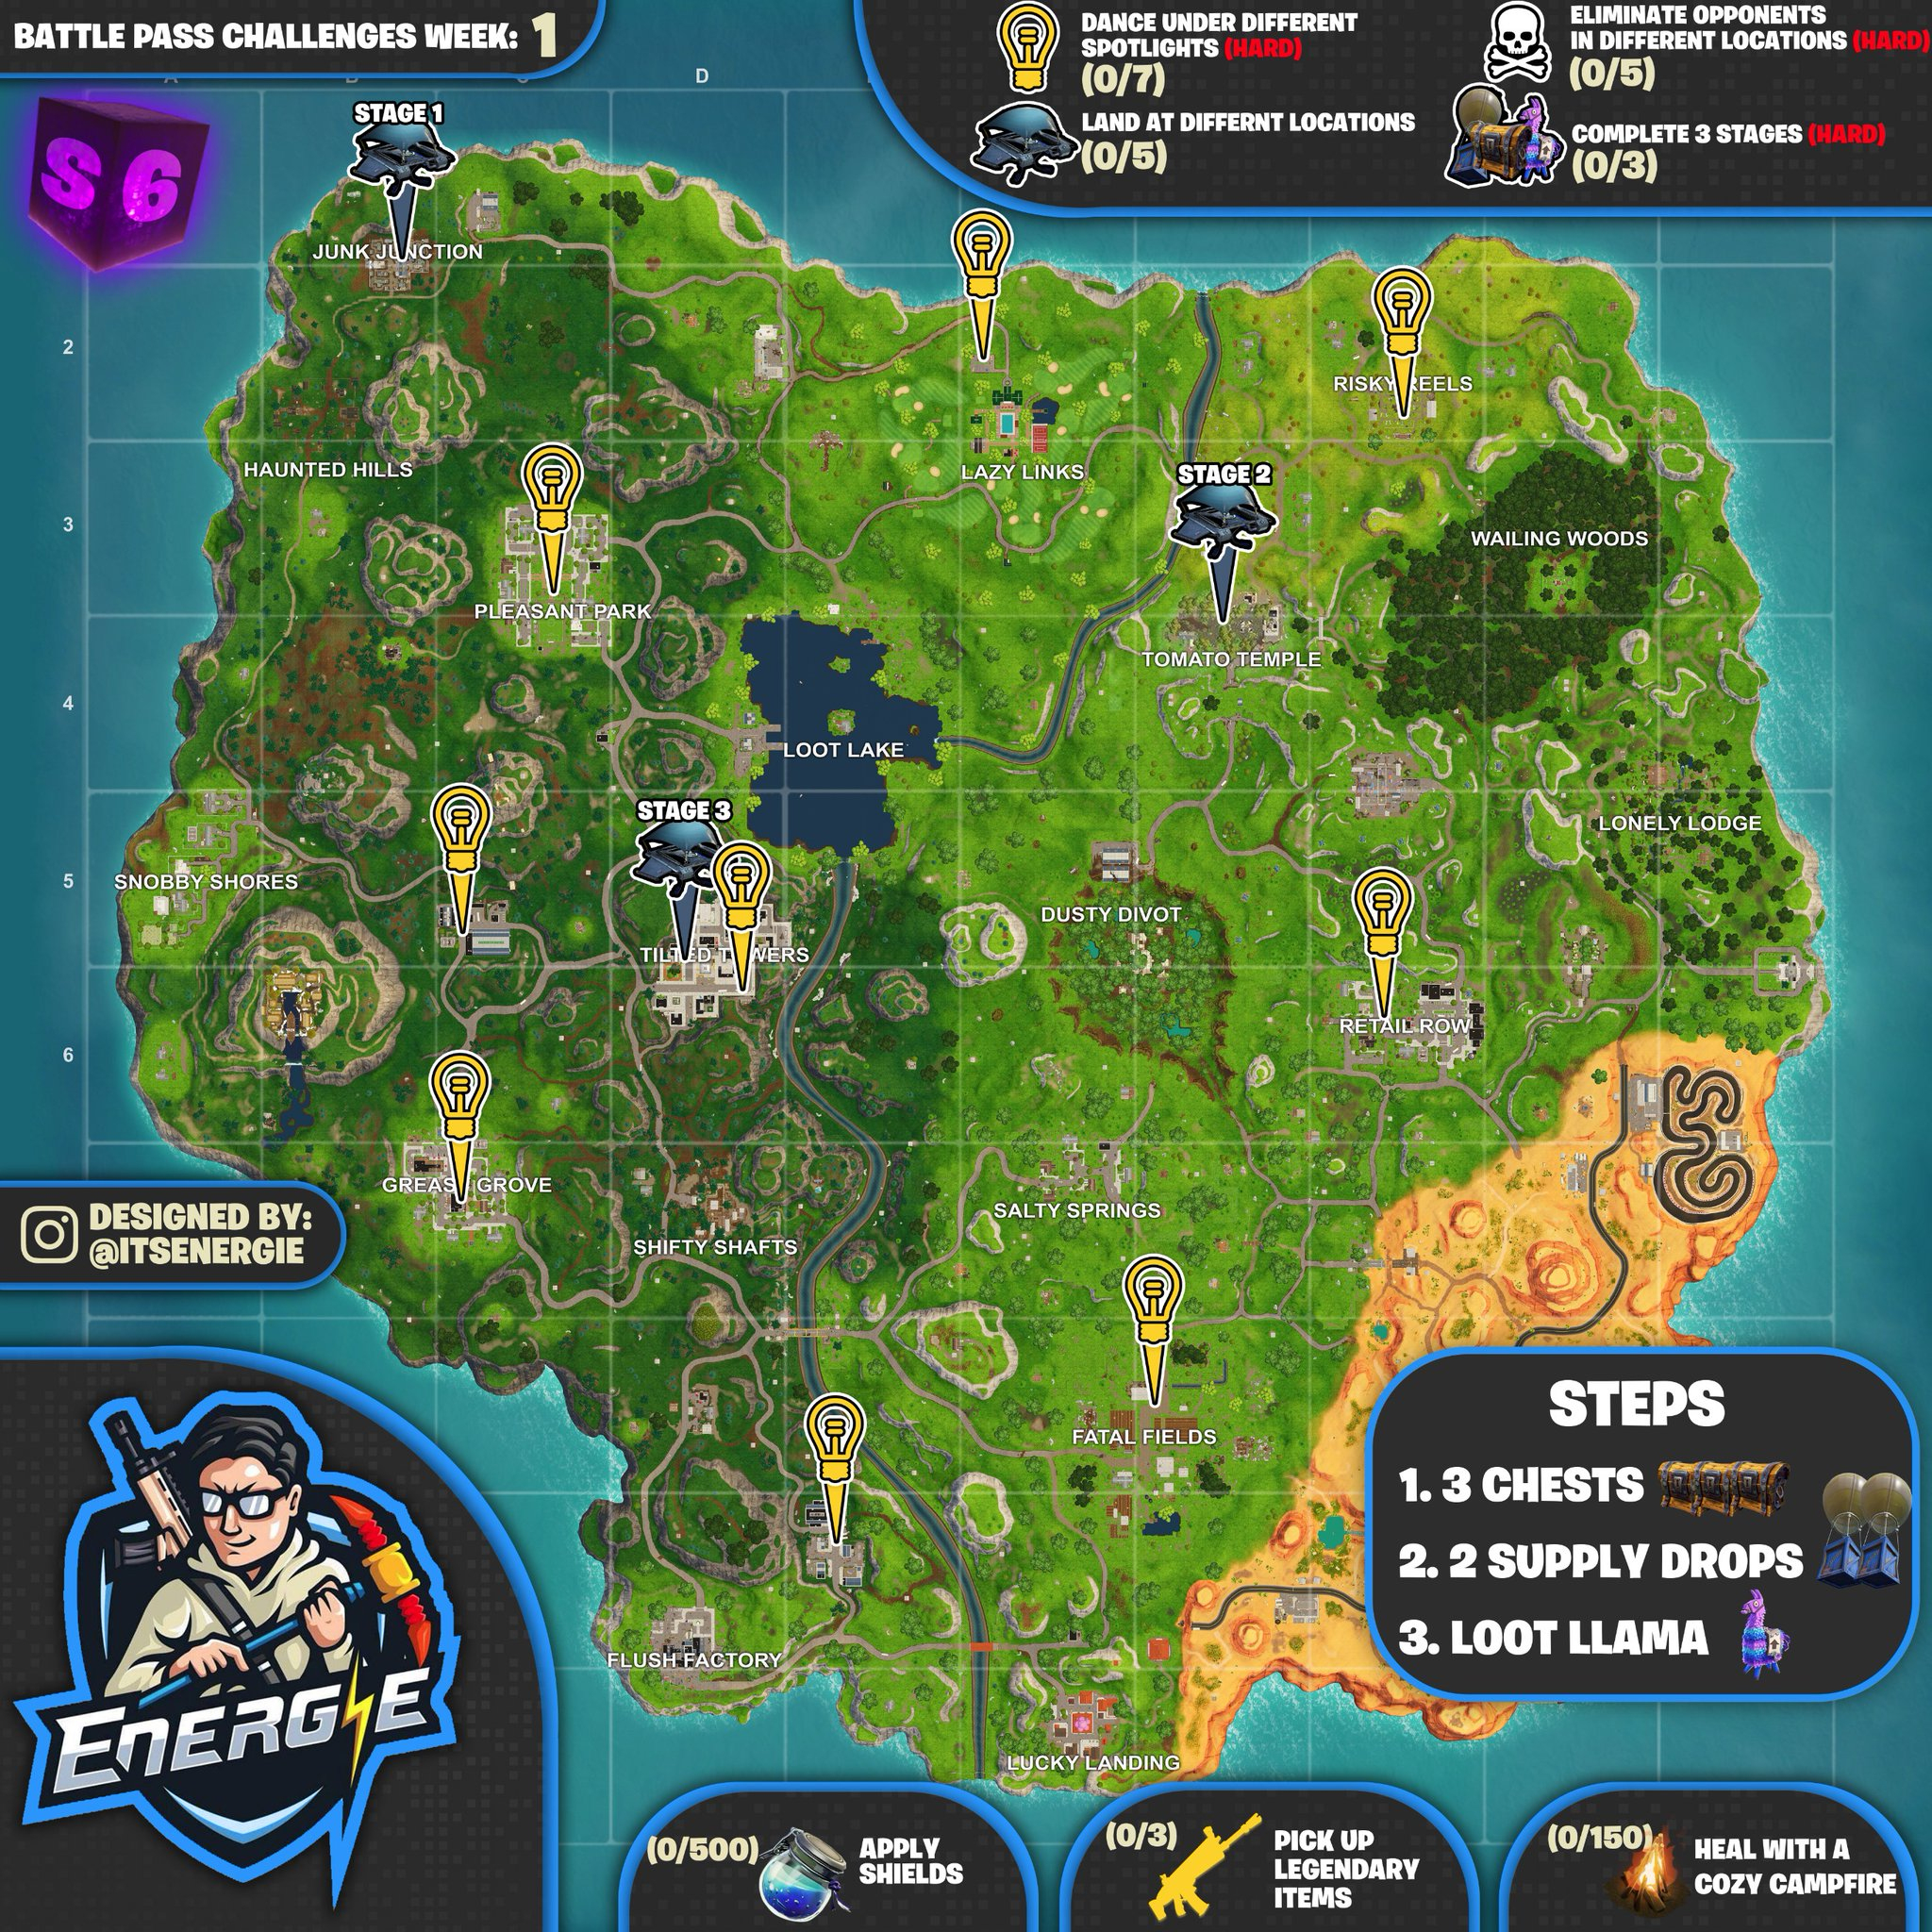 Cheat Sheet Map For Fortnite Battle Royale Season 6, Week 1 - Printable Fortnite Map